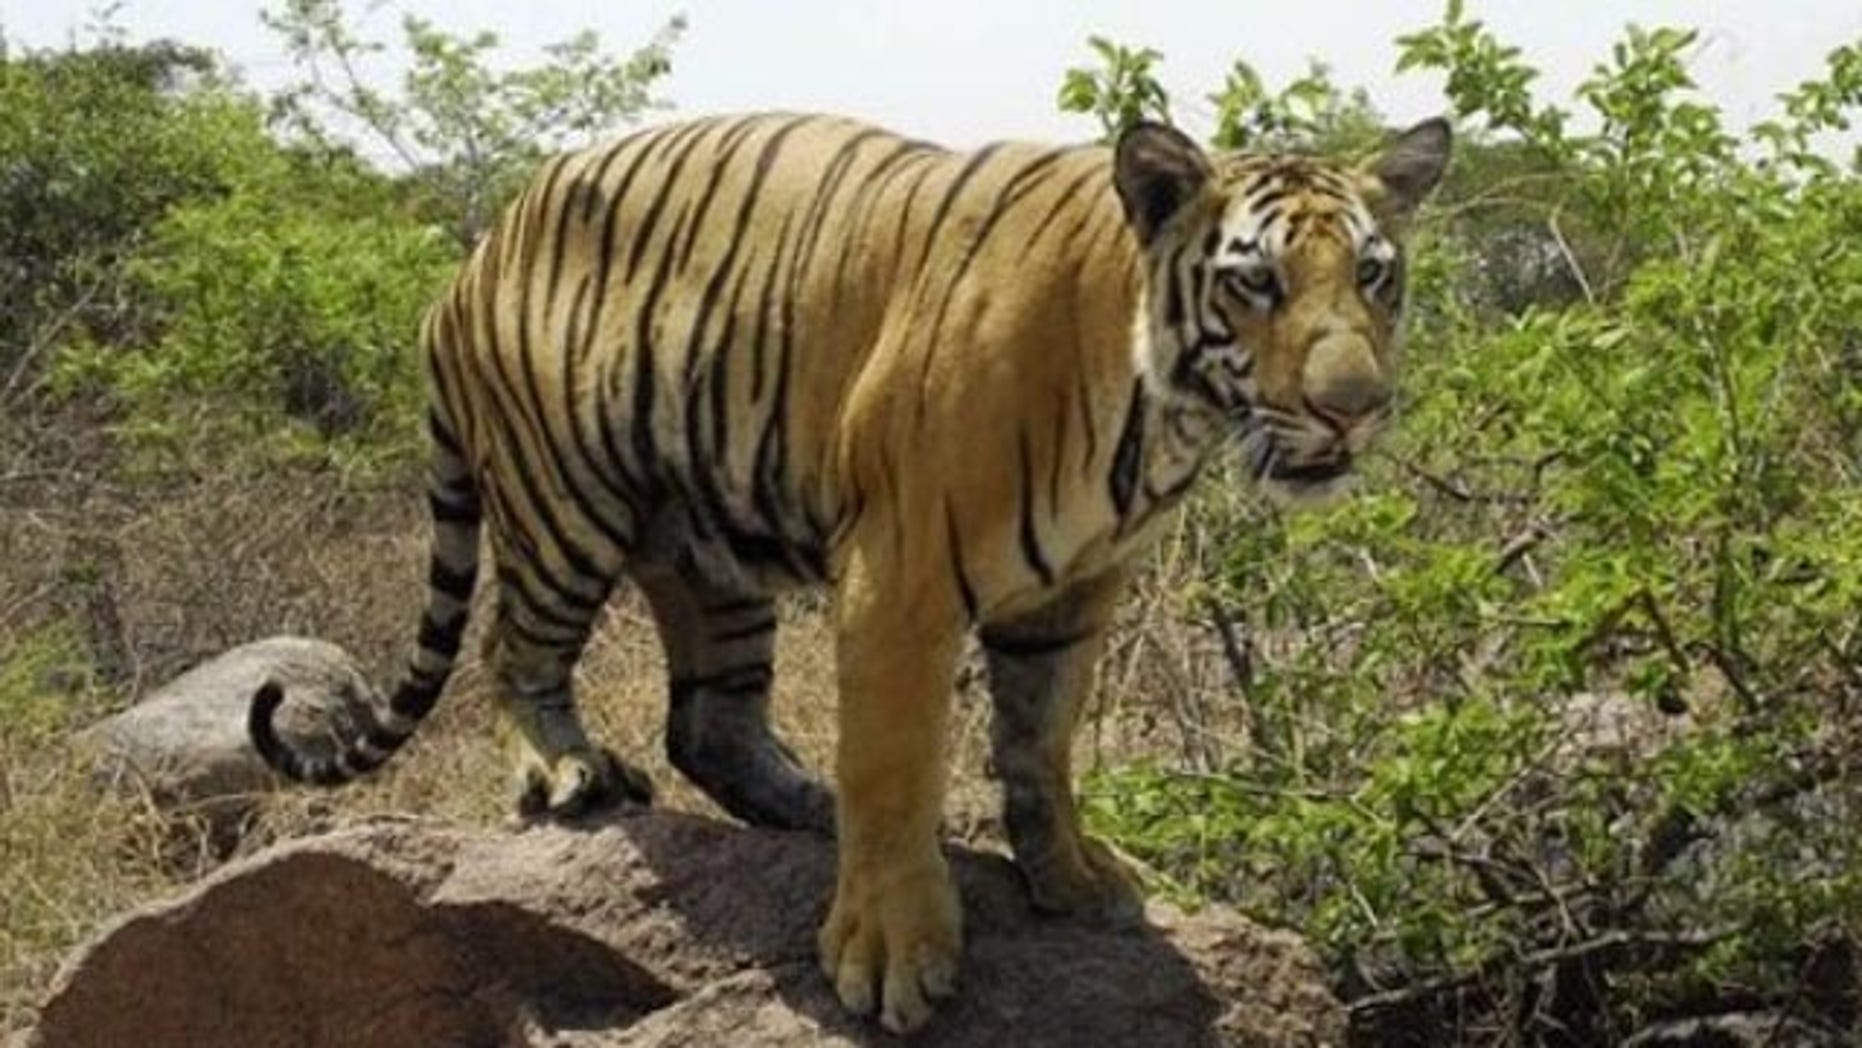 FILE: In this May 12, 2007 a one-year-old Bengal Tiger Banti looks for water at the Nehru Zoological Park in Hyderabad, India.  According to Yuri Fedotov head of the U.N. office on drugs and crime about 150 tigers -- or 5% of the world's tiger population are killed each year by poachers.